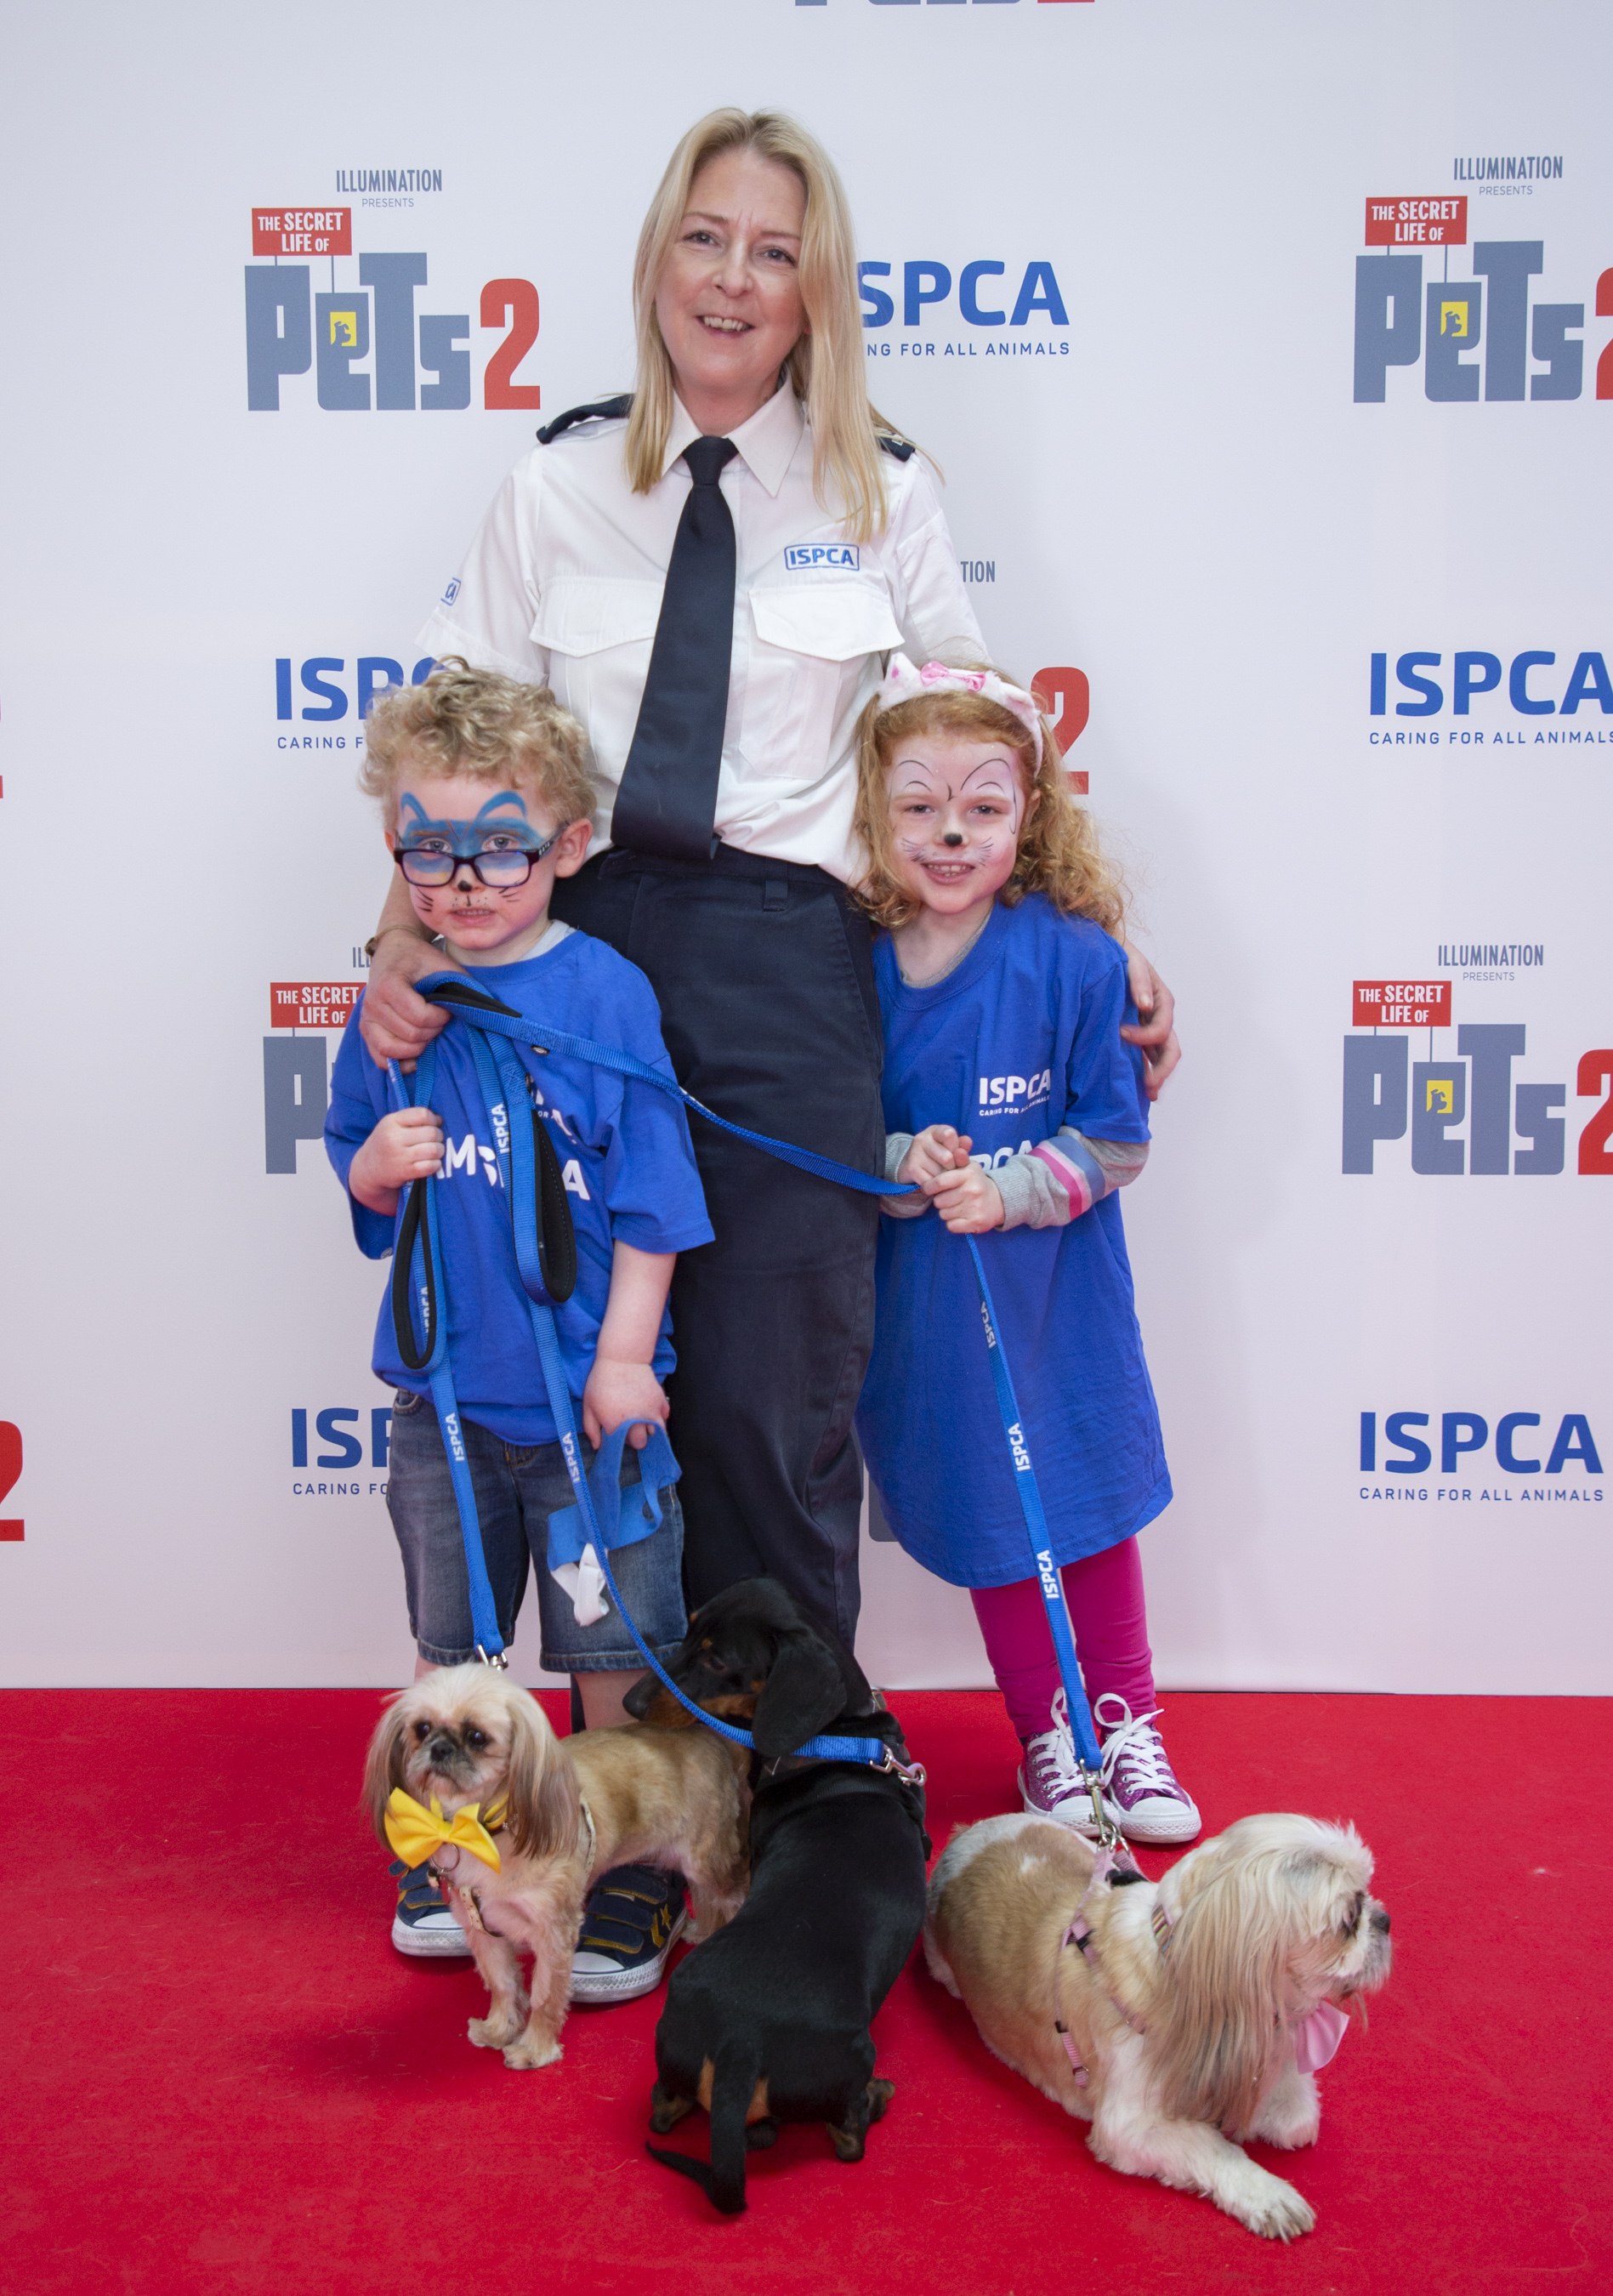 The ISPCA was delighted to partner with Universal Pictures Ireland for the Irish premiere screening